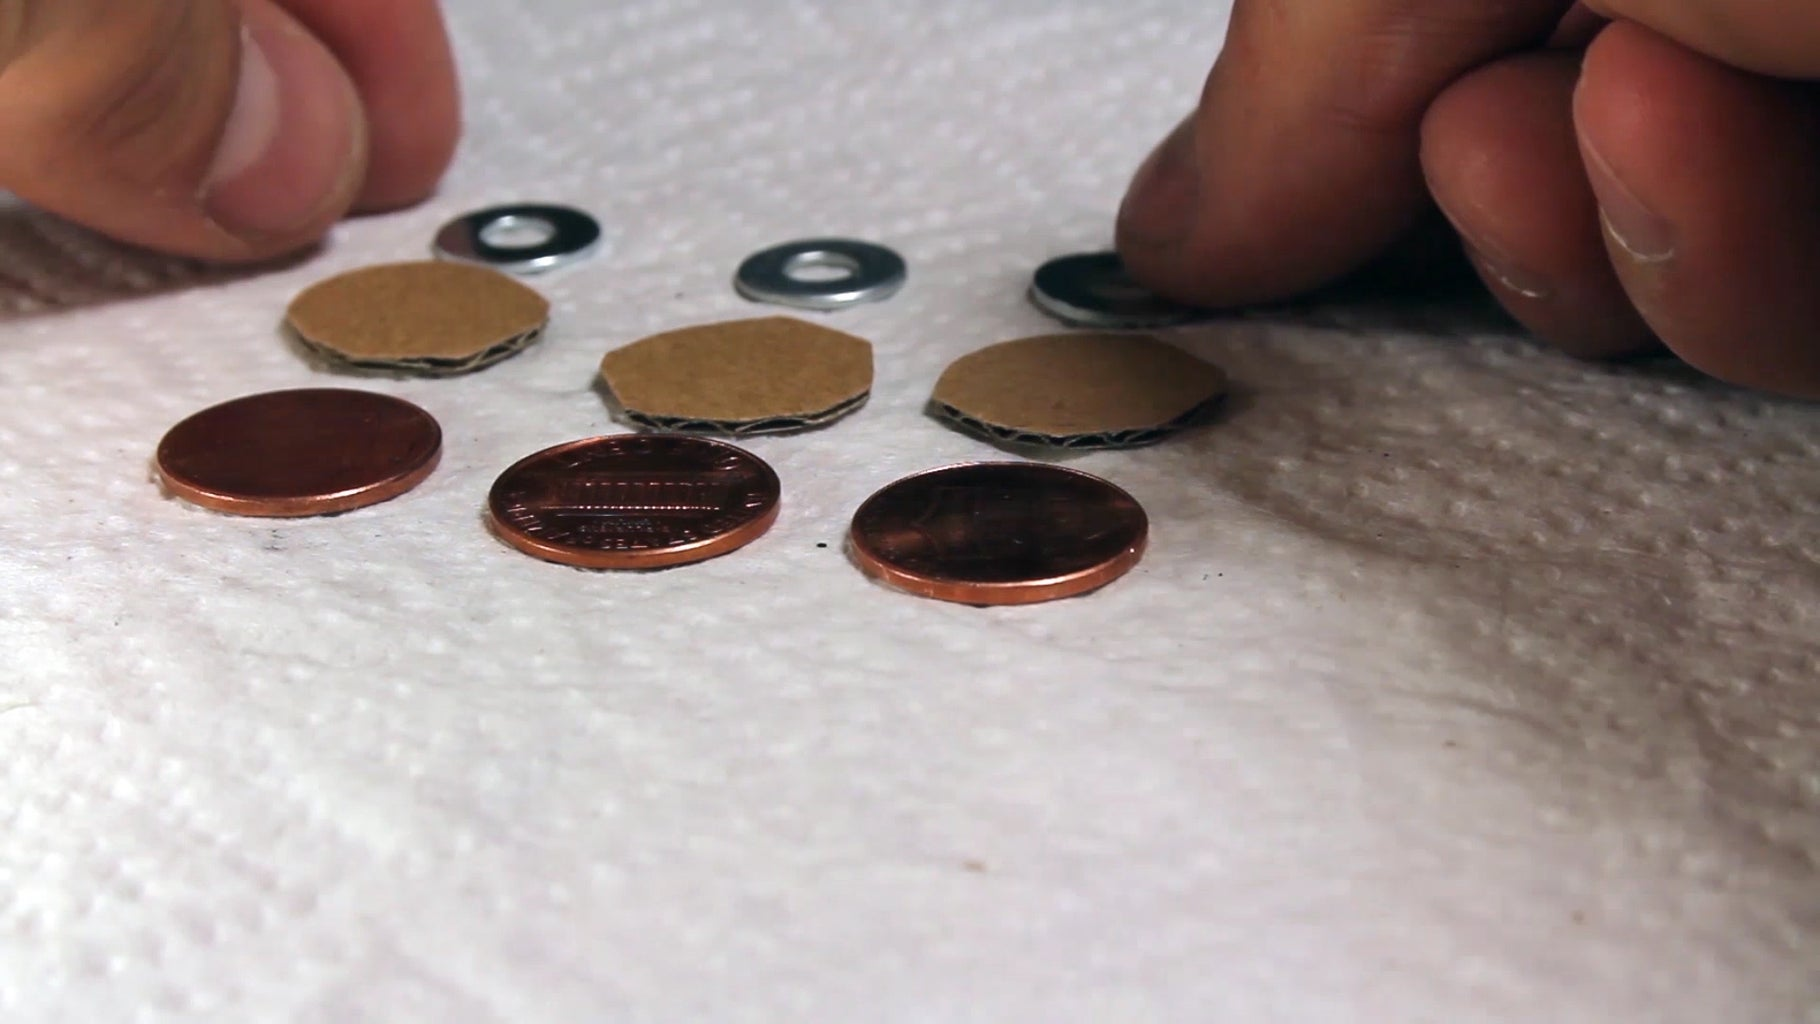 Power a Calculator With 3 Pennies!